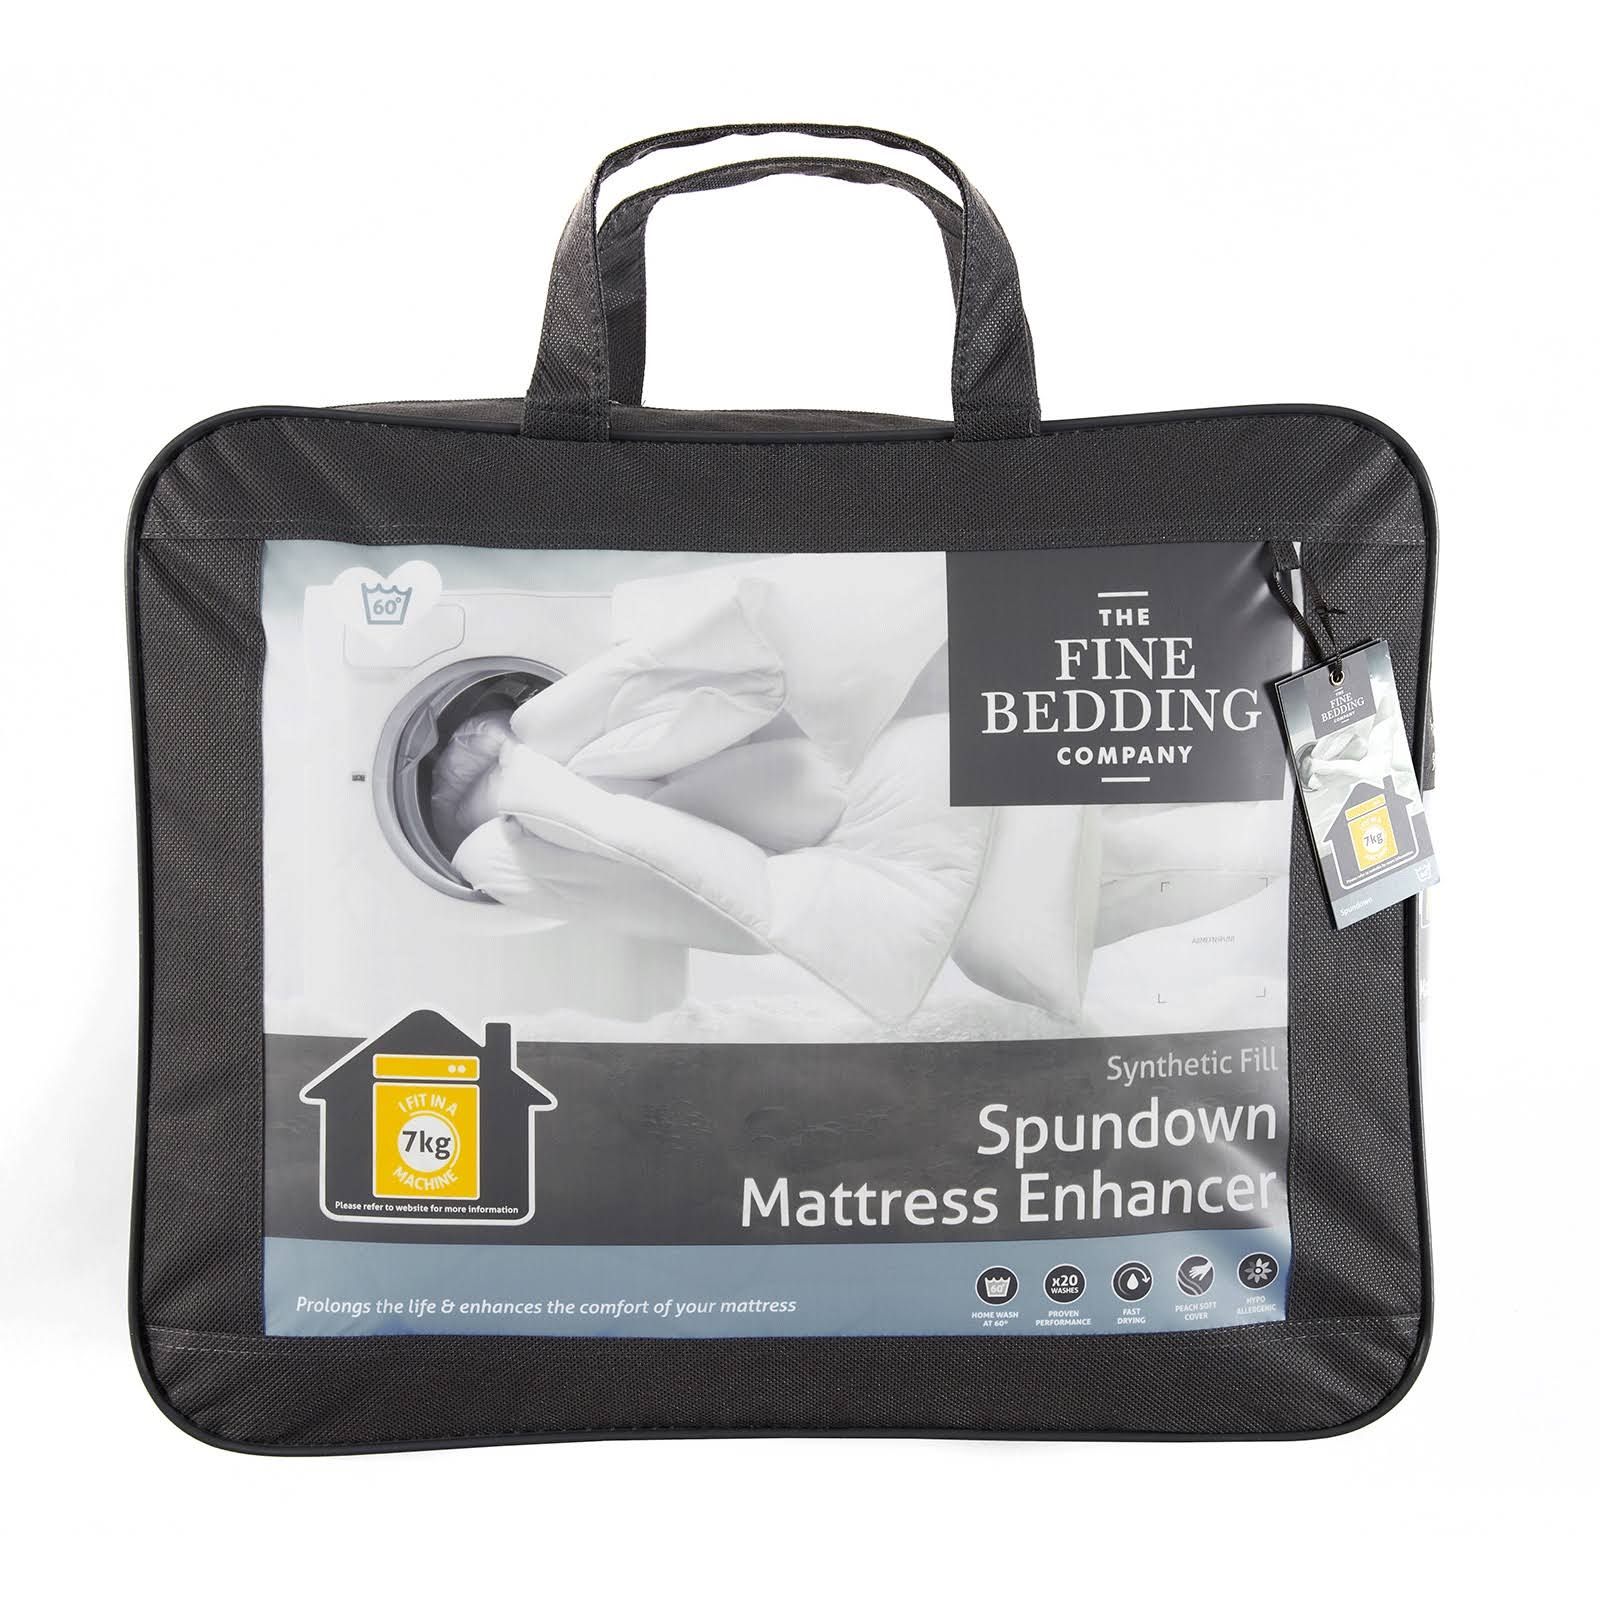 The Fine Bedding Company Spundown Mattress Enhancers